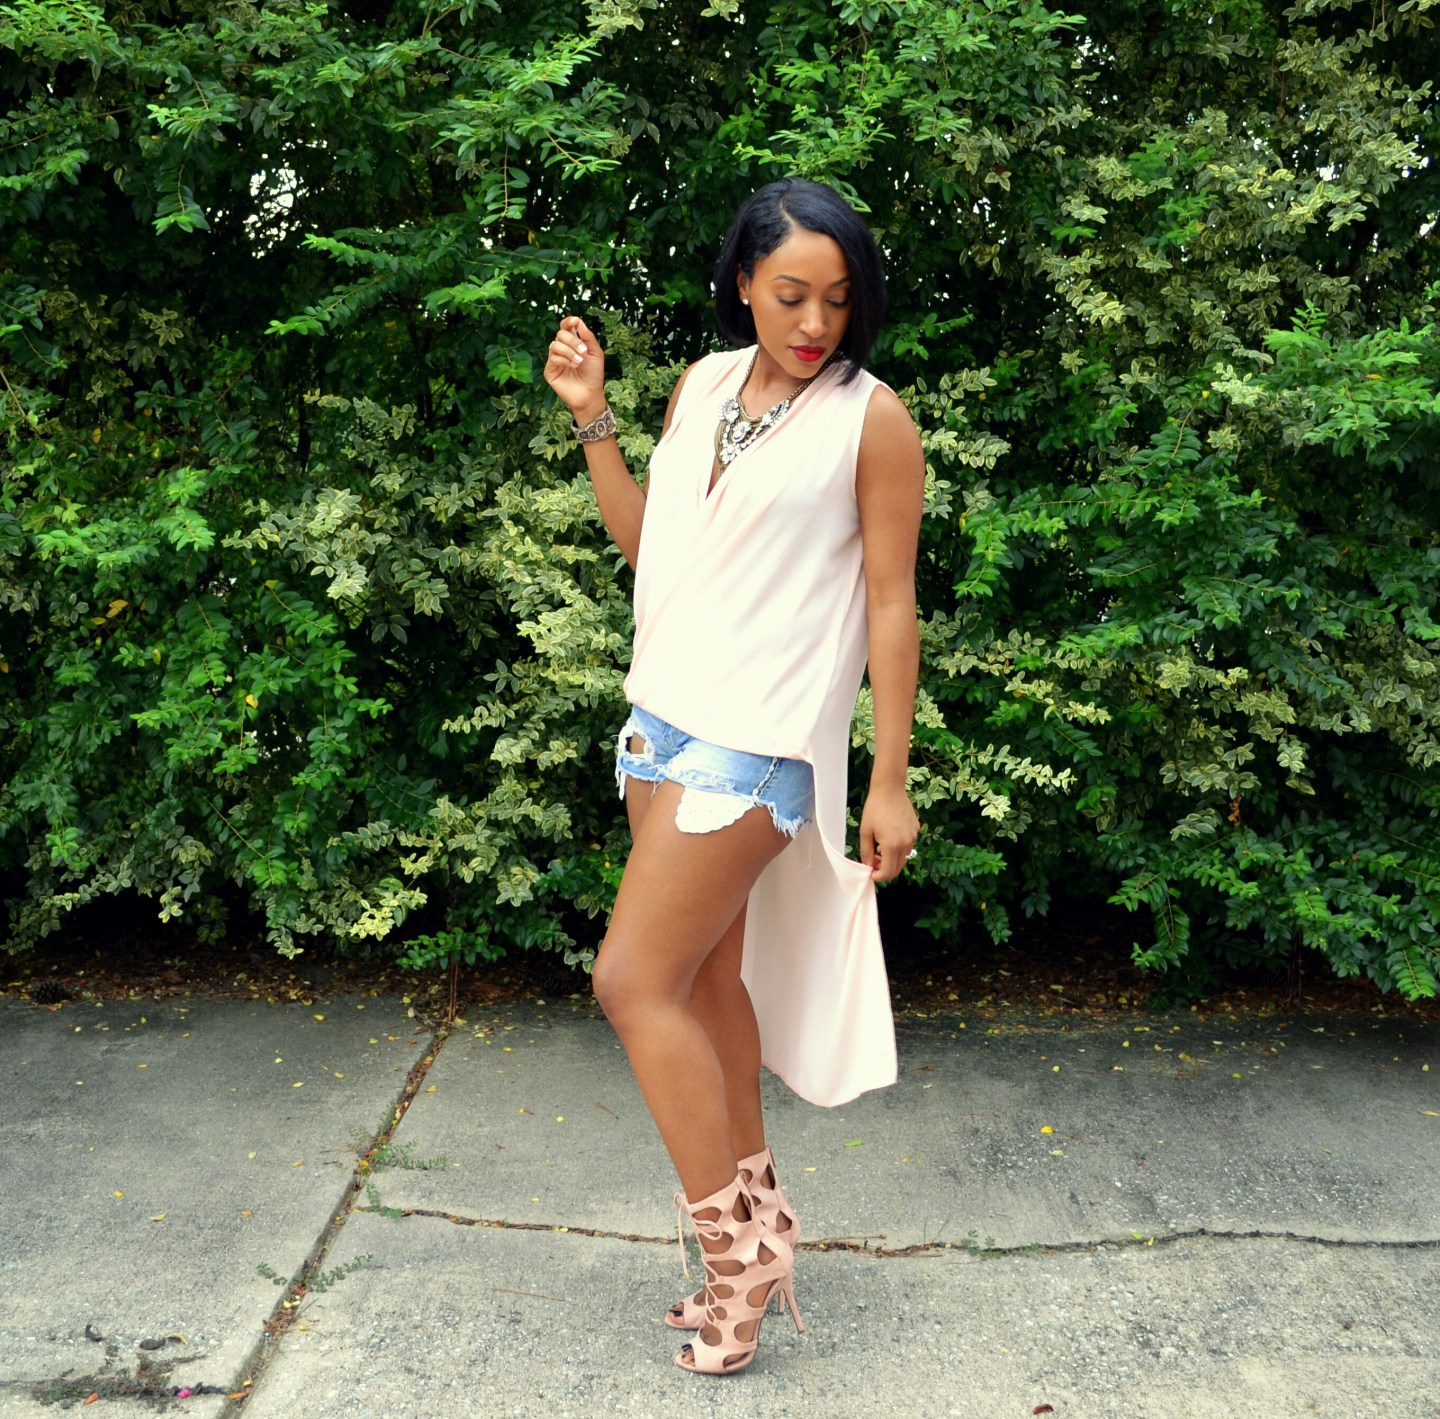 Short Shorts: The Modest Gal Style